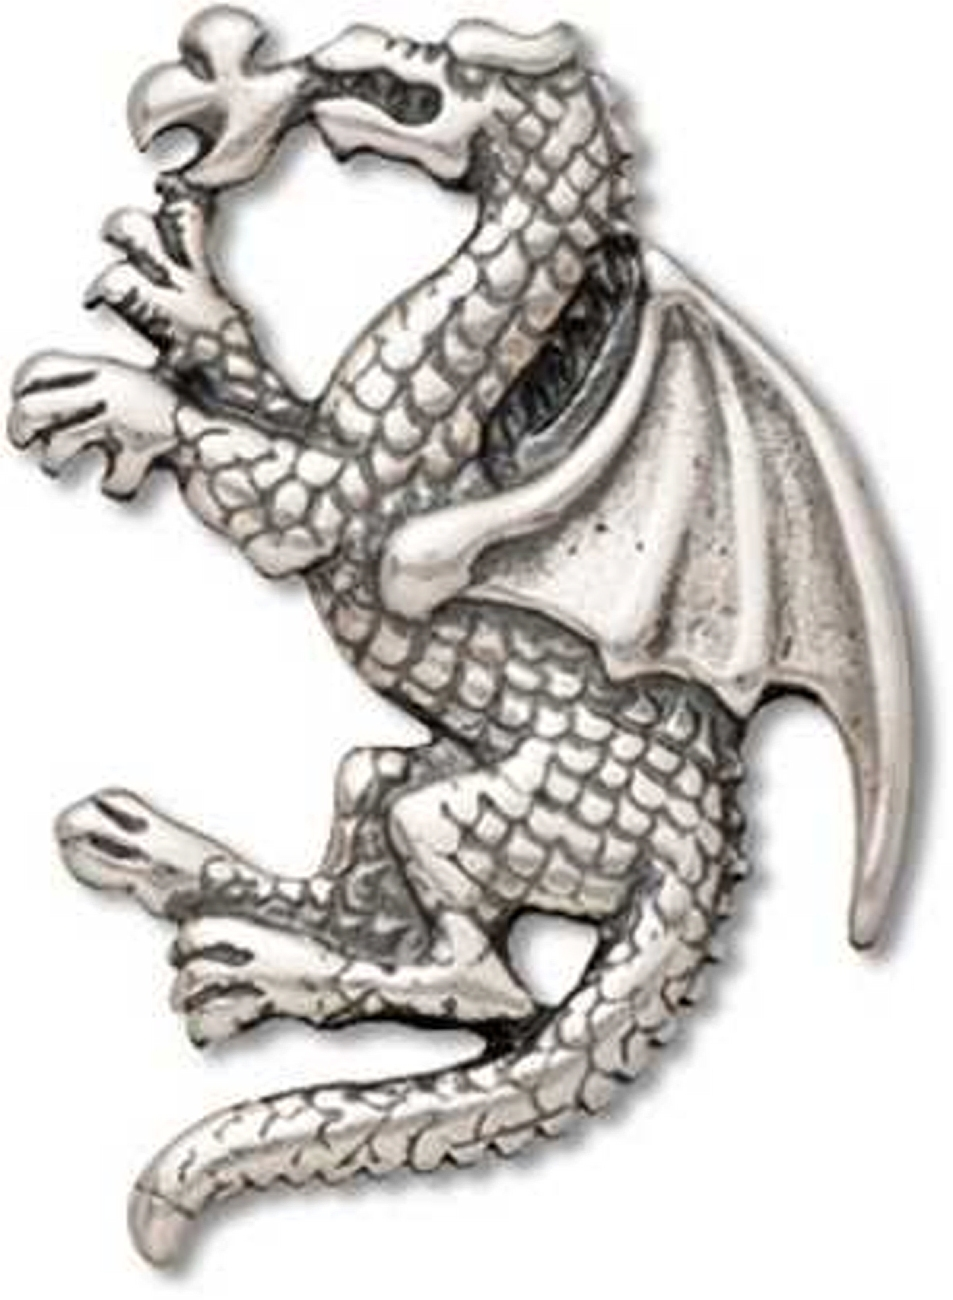 Sterling Silver 7 4.5mm Charm Bracelet With Attached Fantasy Winged Dragon Charm